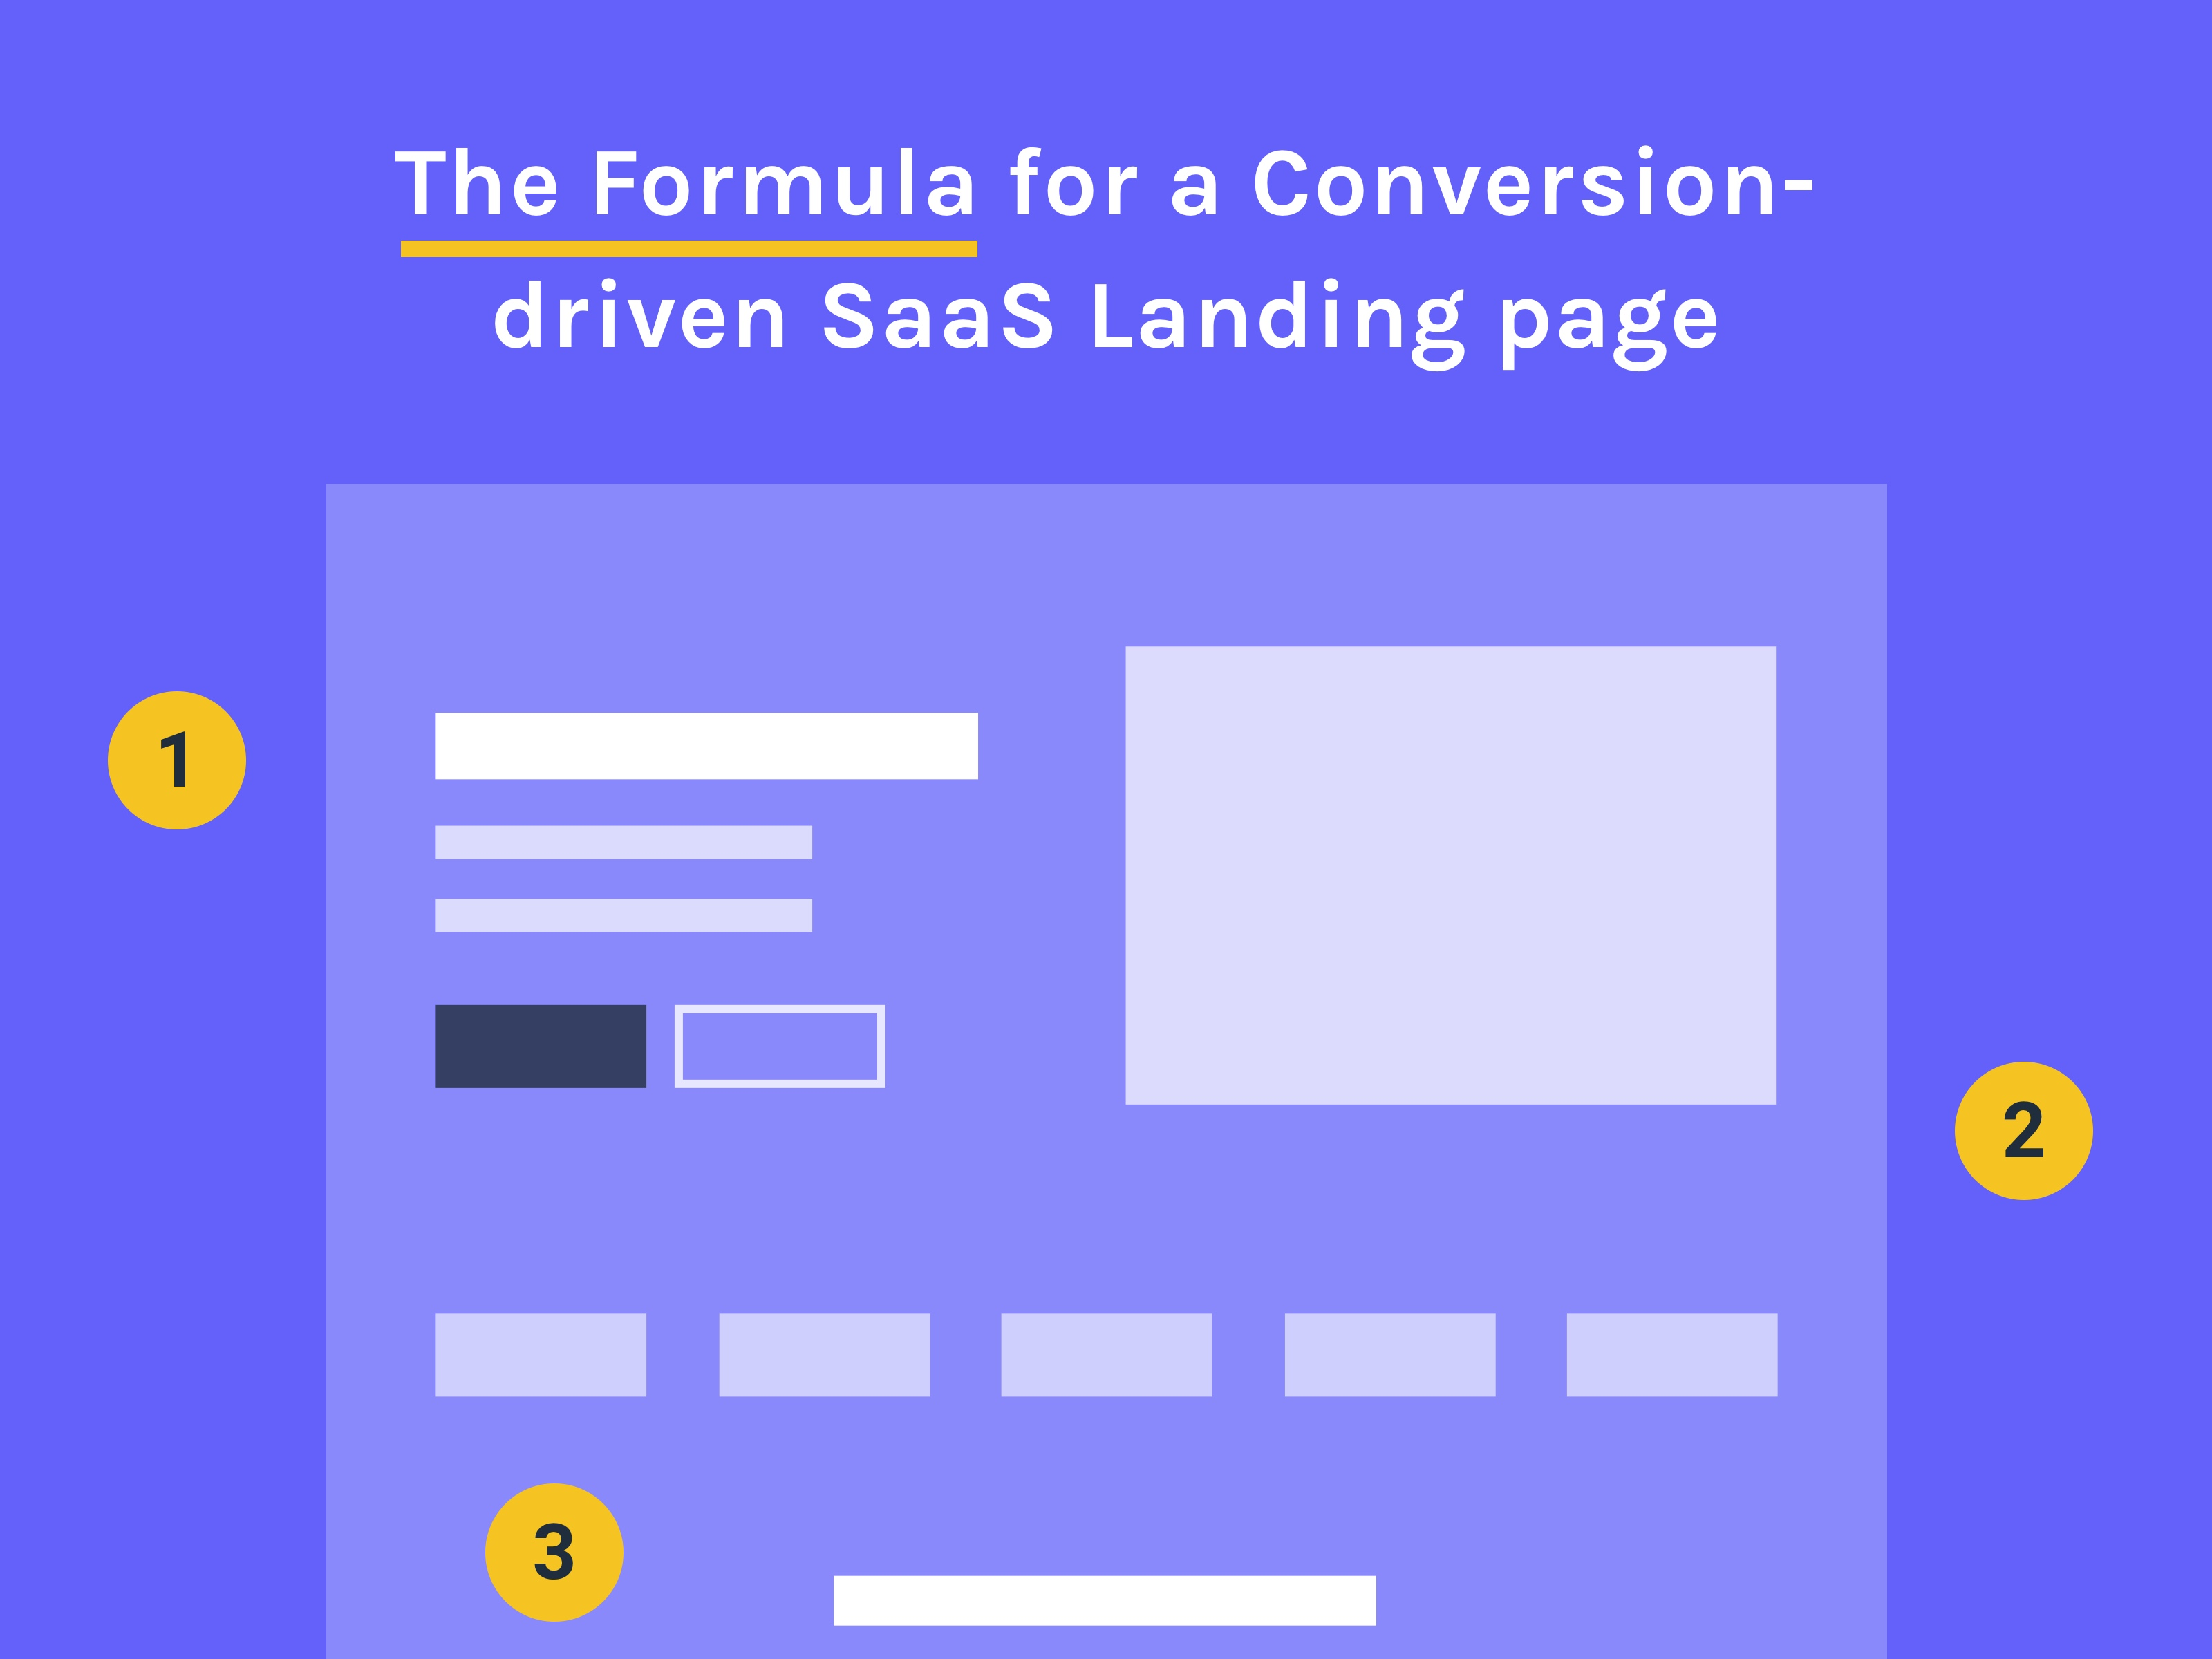 How to Make a Conversion-driven SaaS Landing page [2018 edition]